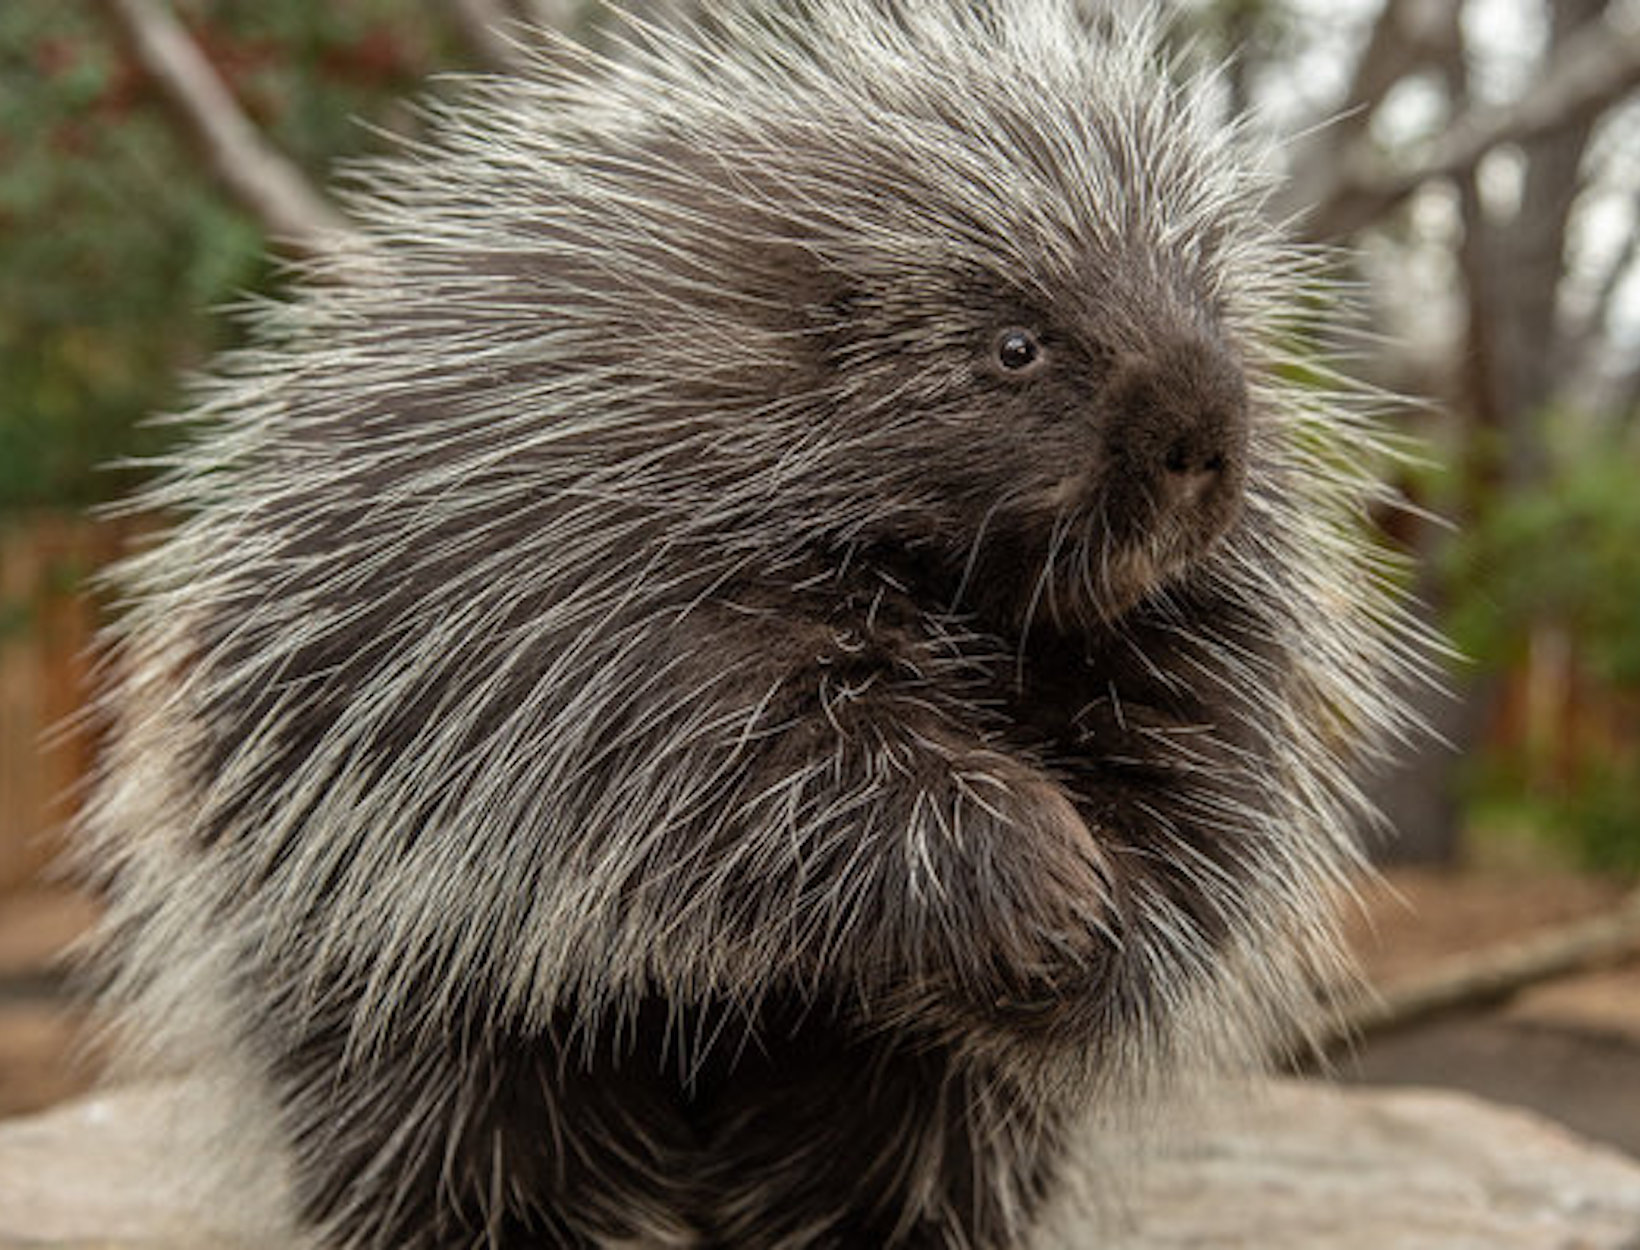 Porcupine Barbs for Better Wound Healing